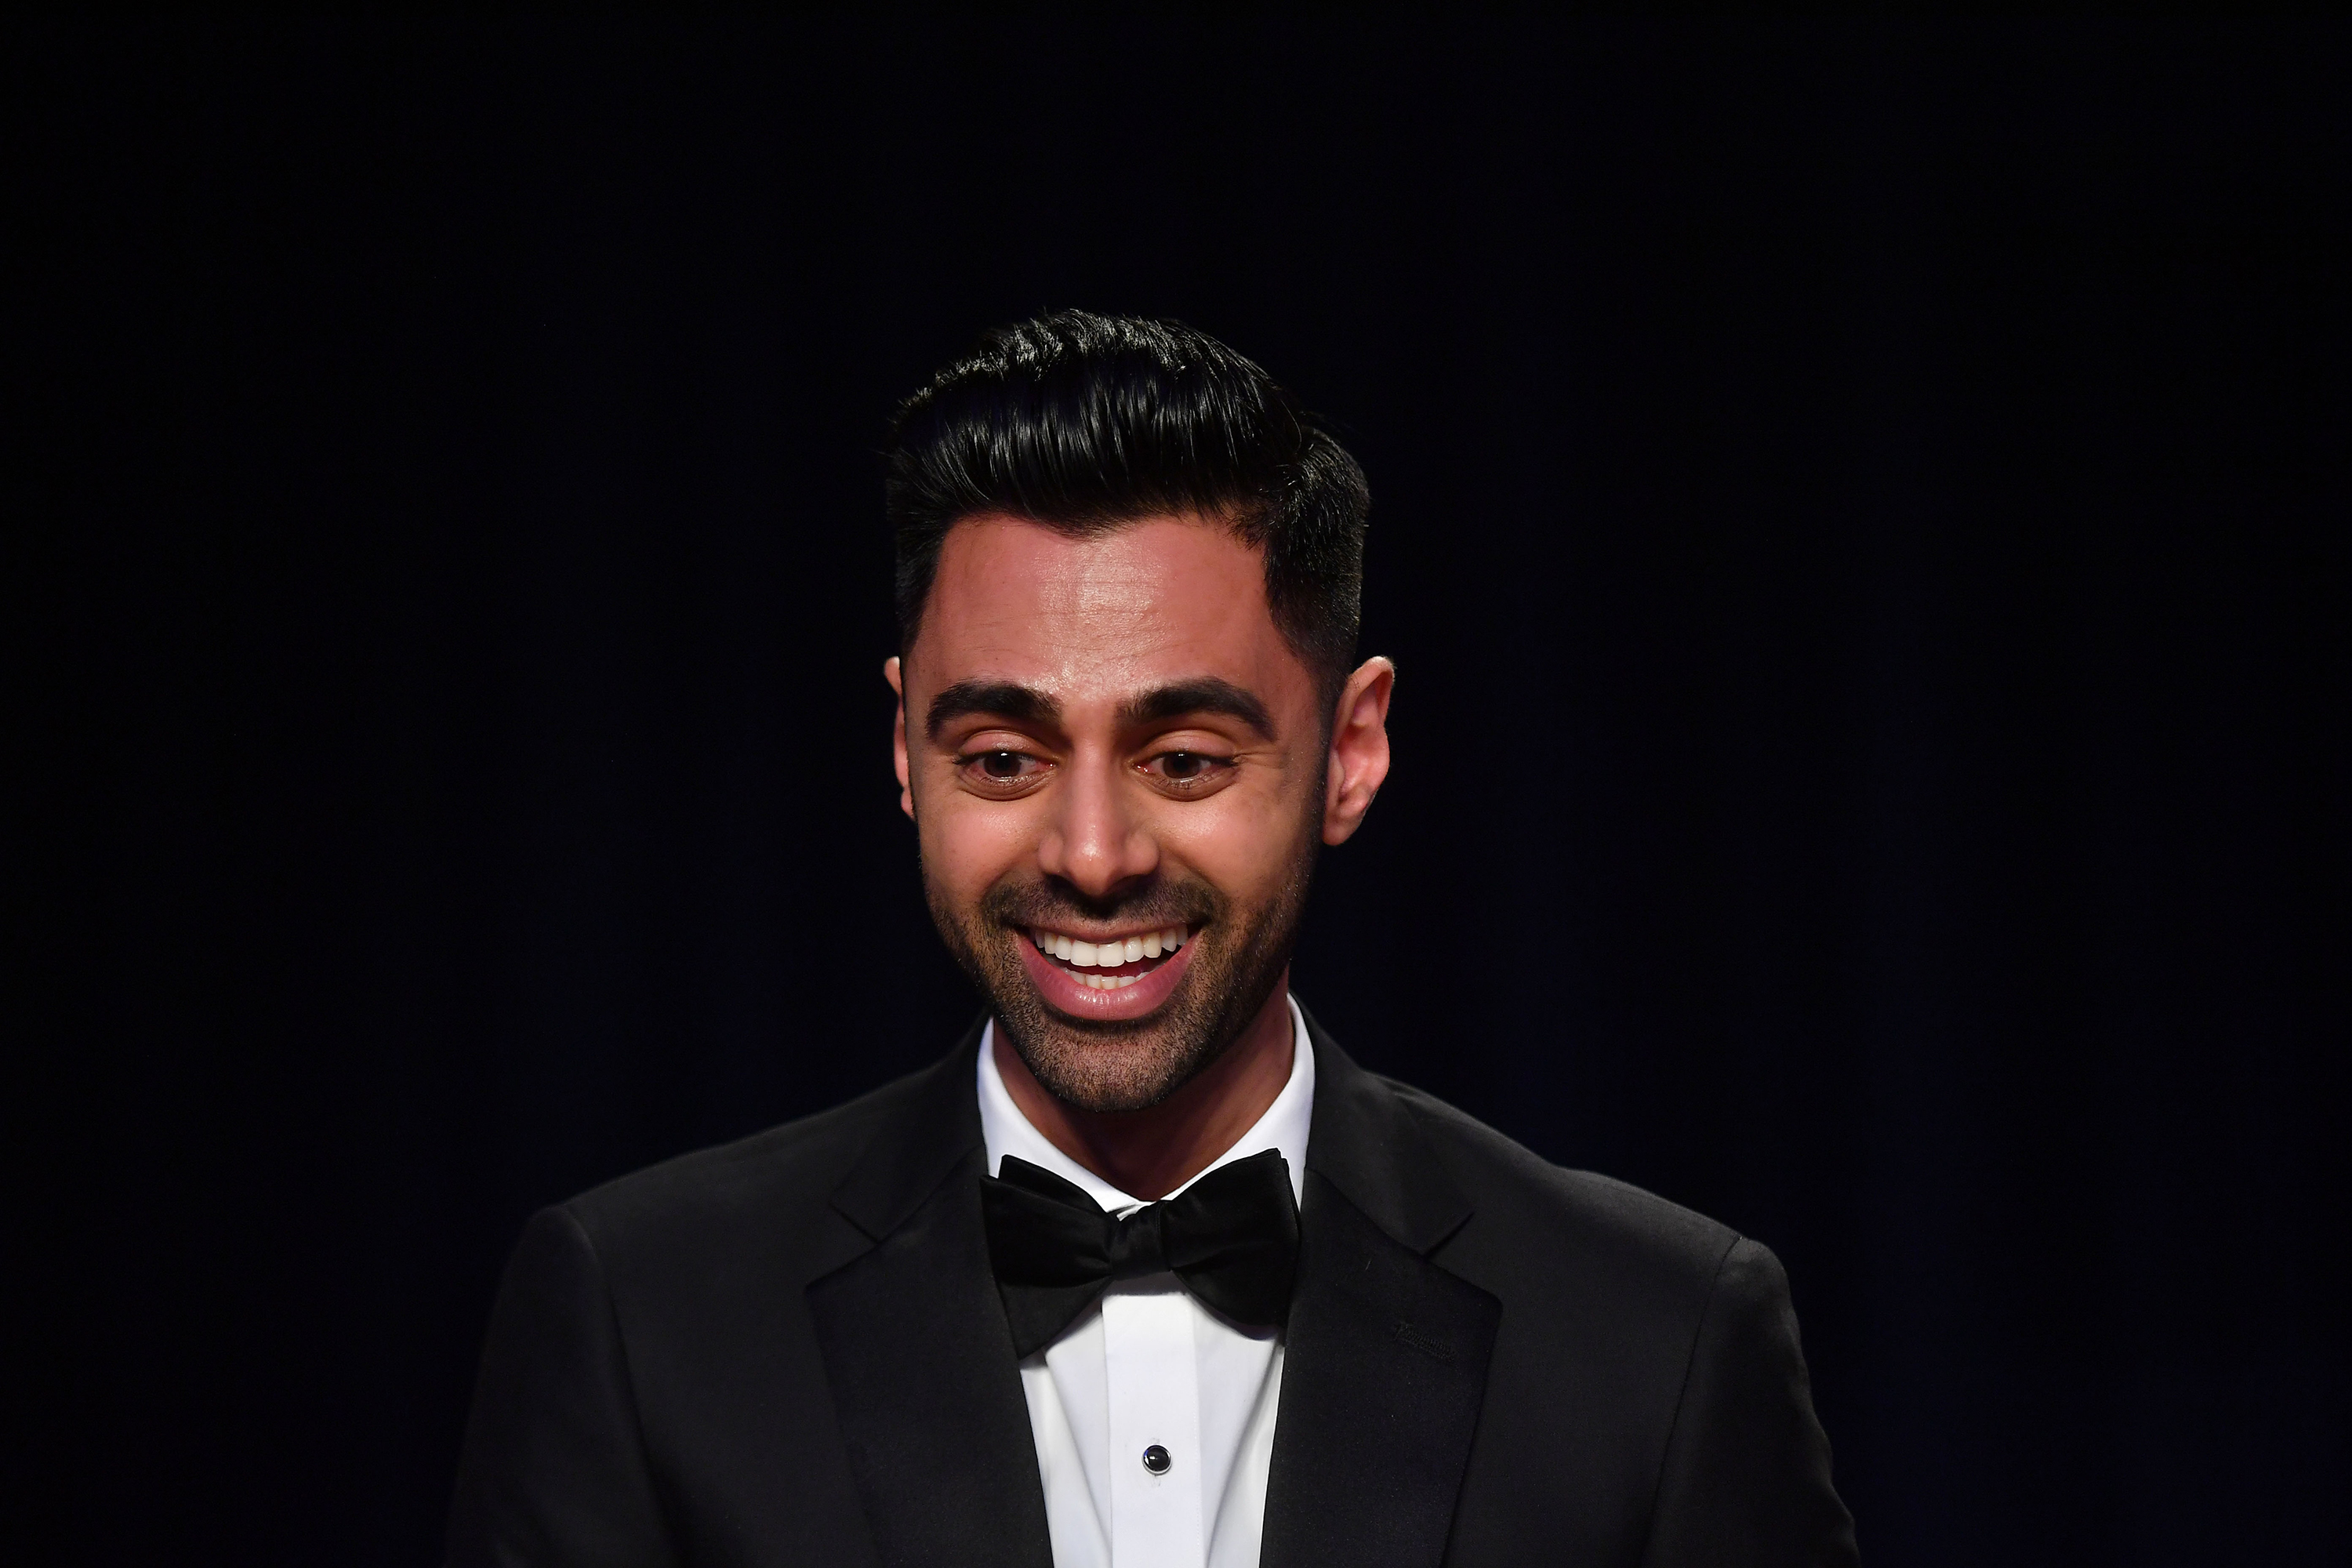 Indian-American Hasan Minhaj's new Netflix series is different from